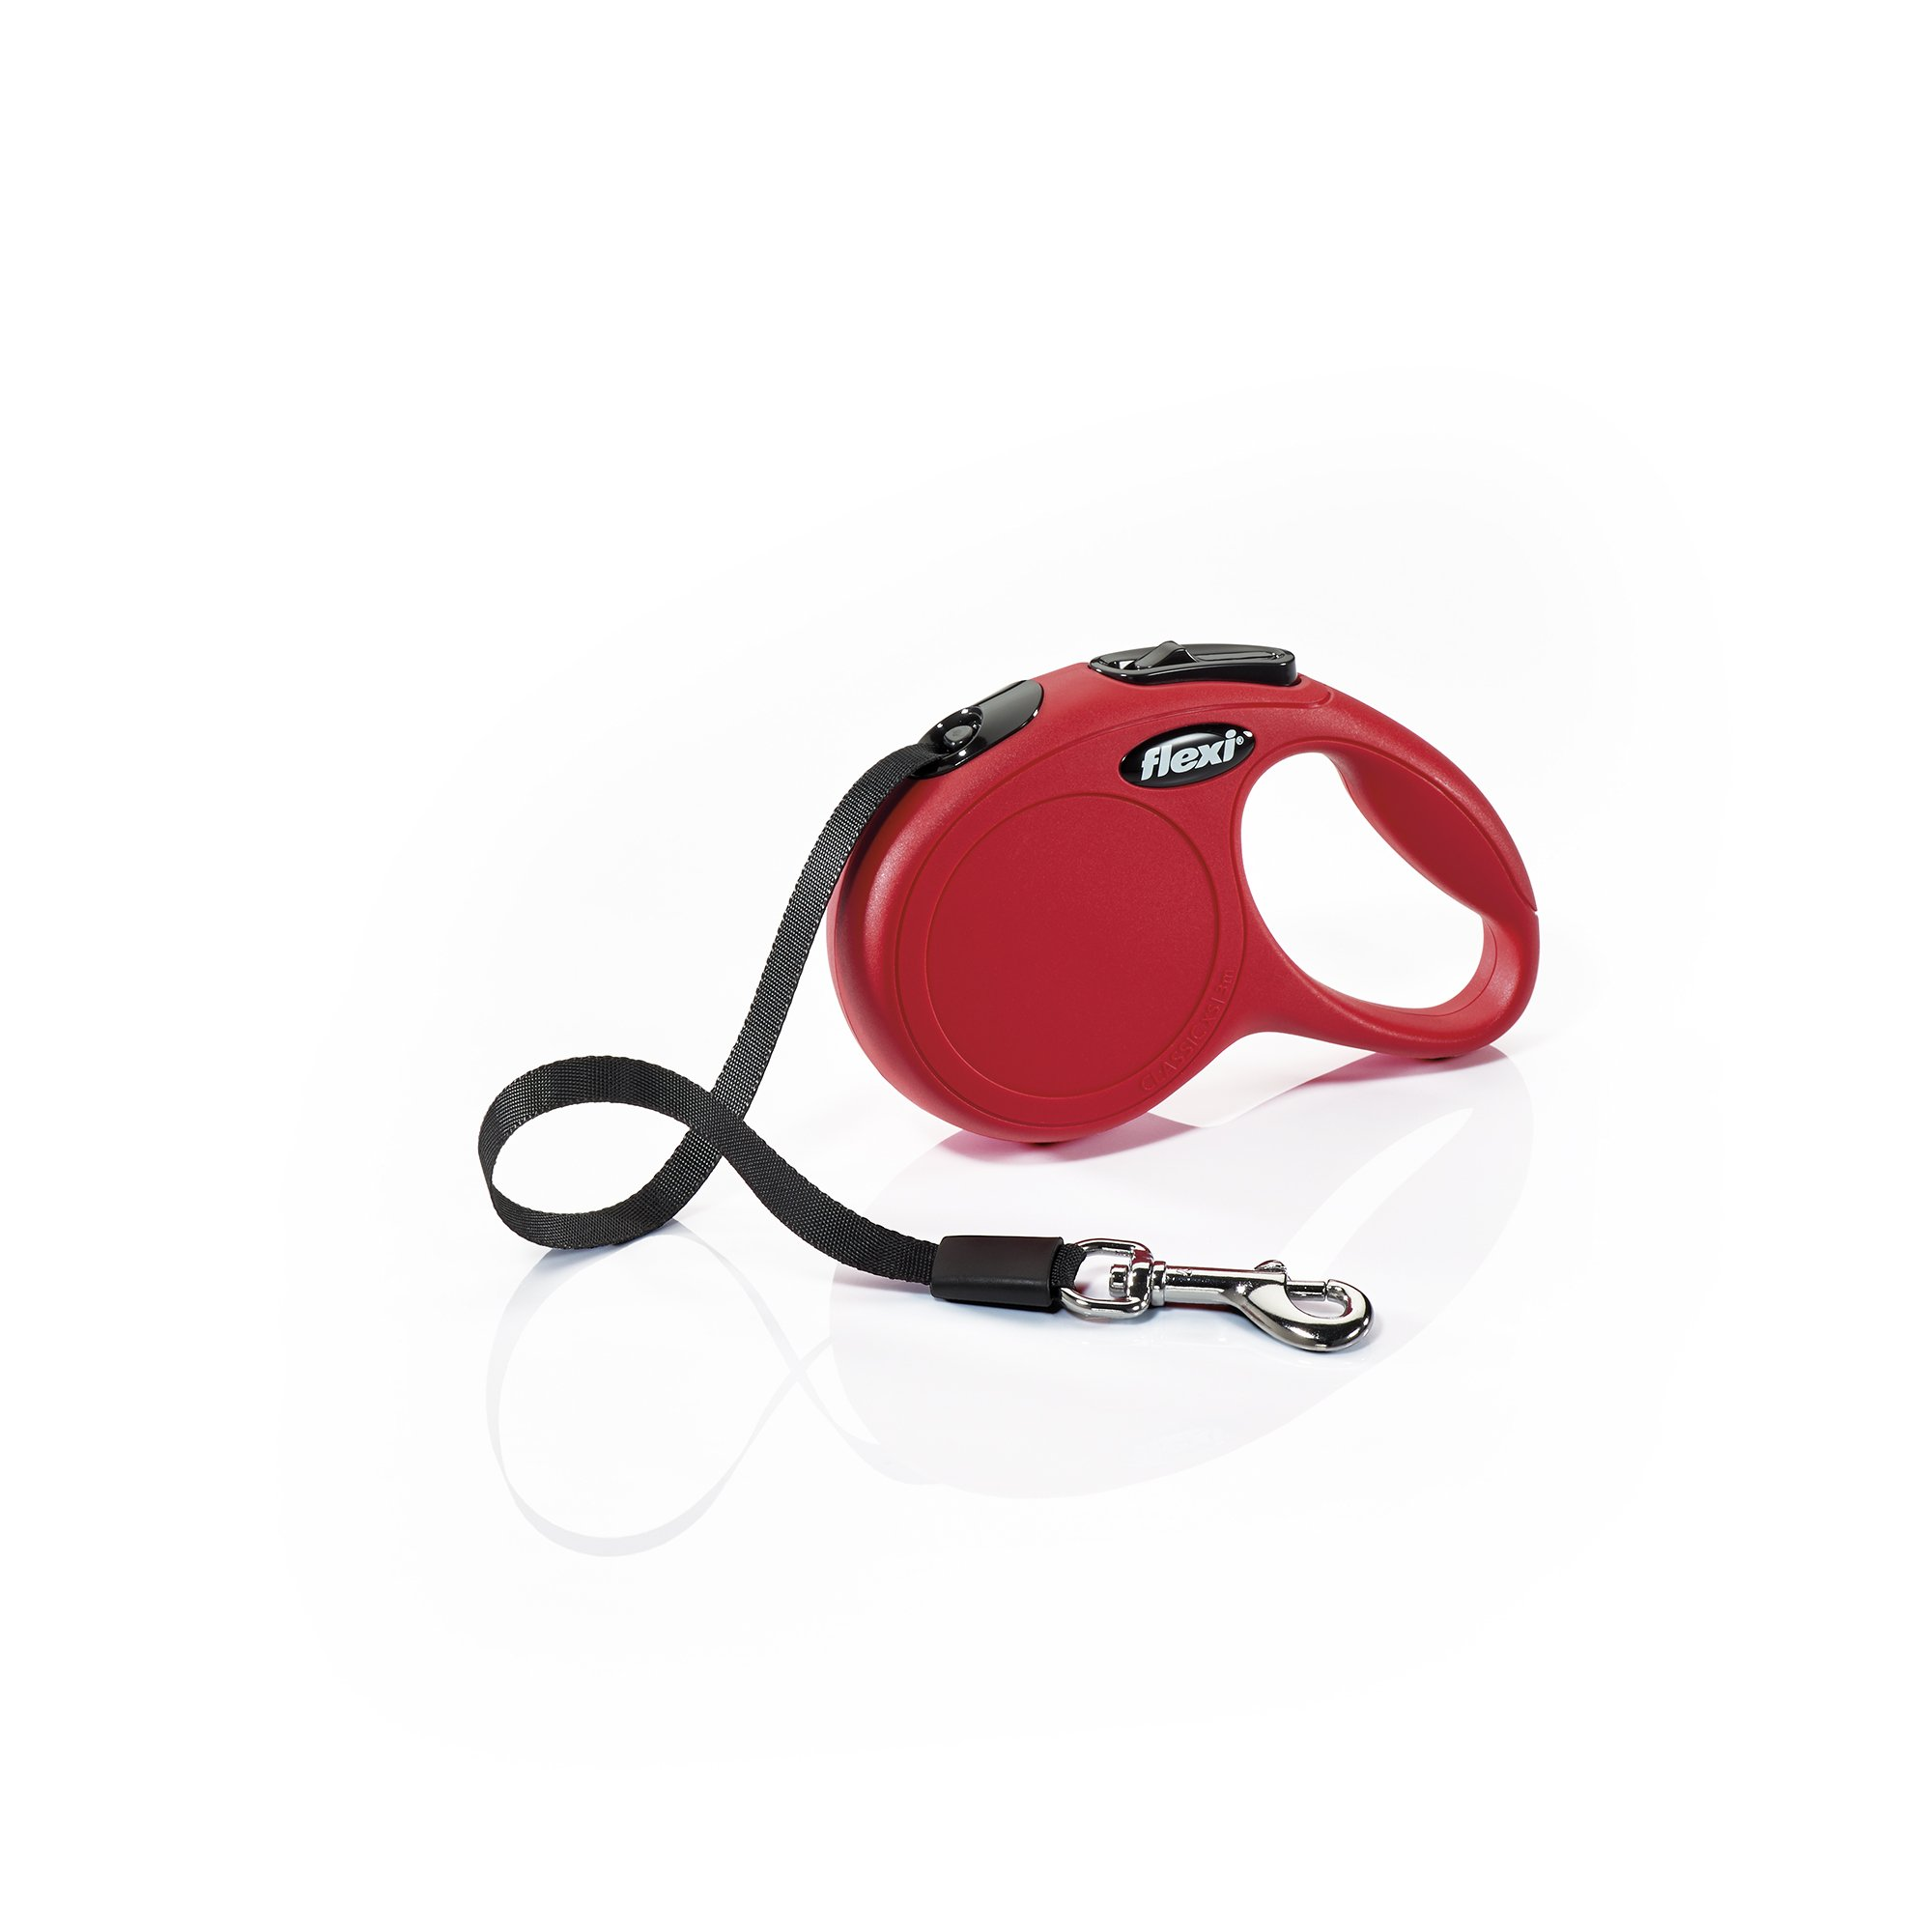 Flexi New Classic Retractable Dog Leash (Tape), 16 ft, Extra Small, Red